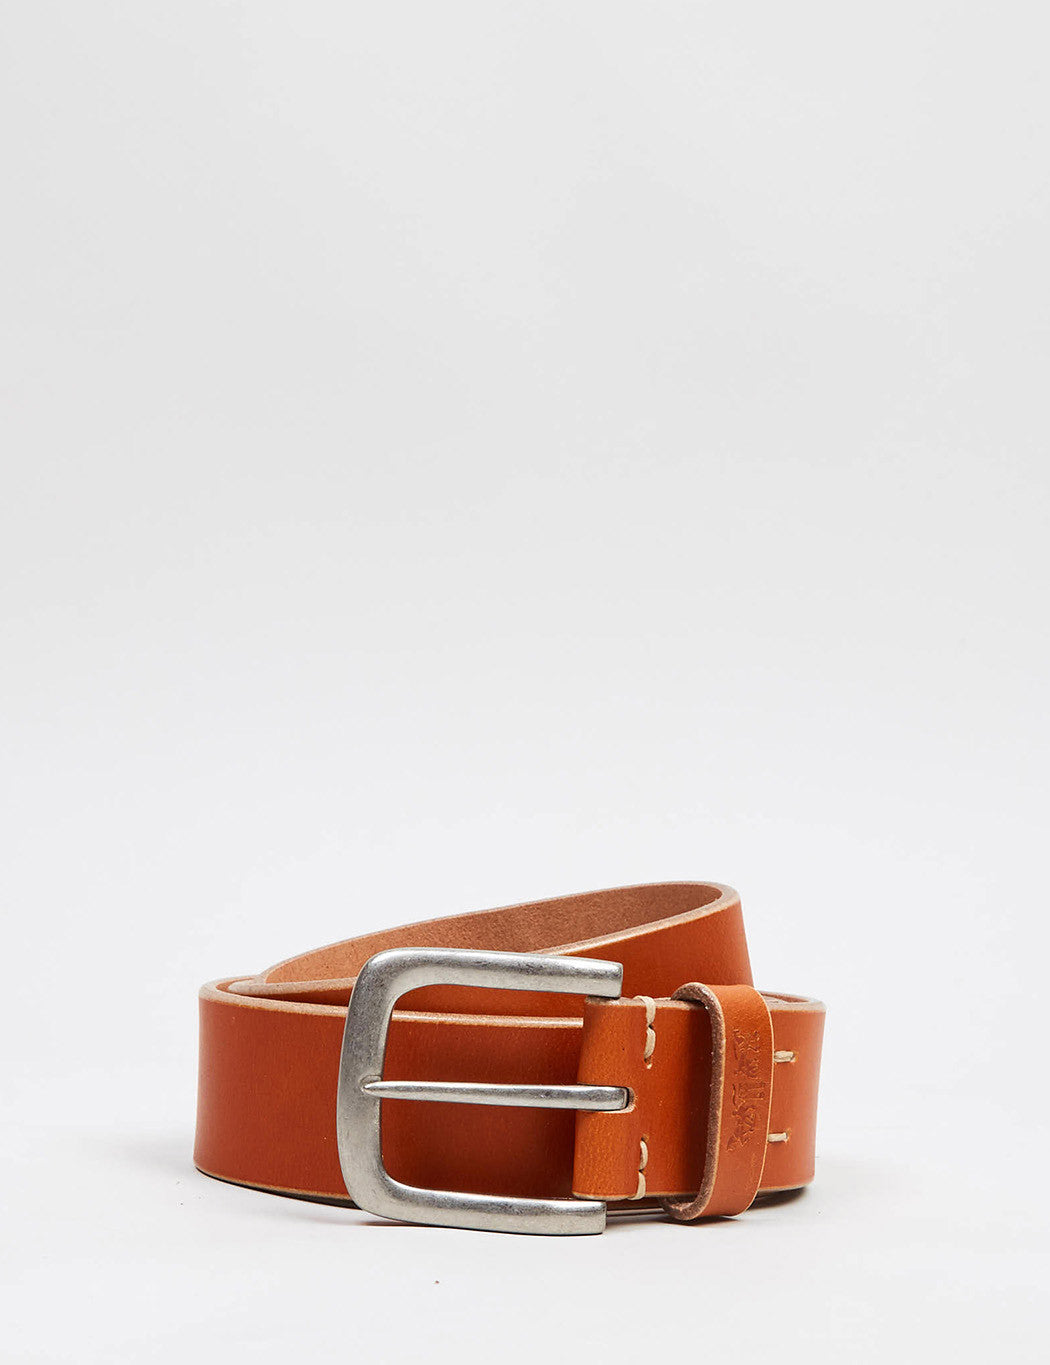 Levis Heavy Leather Premium Belt - Light Brown